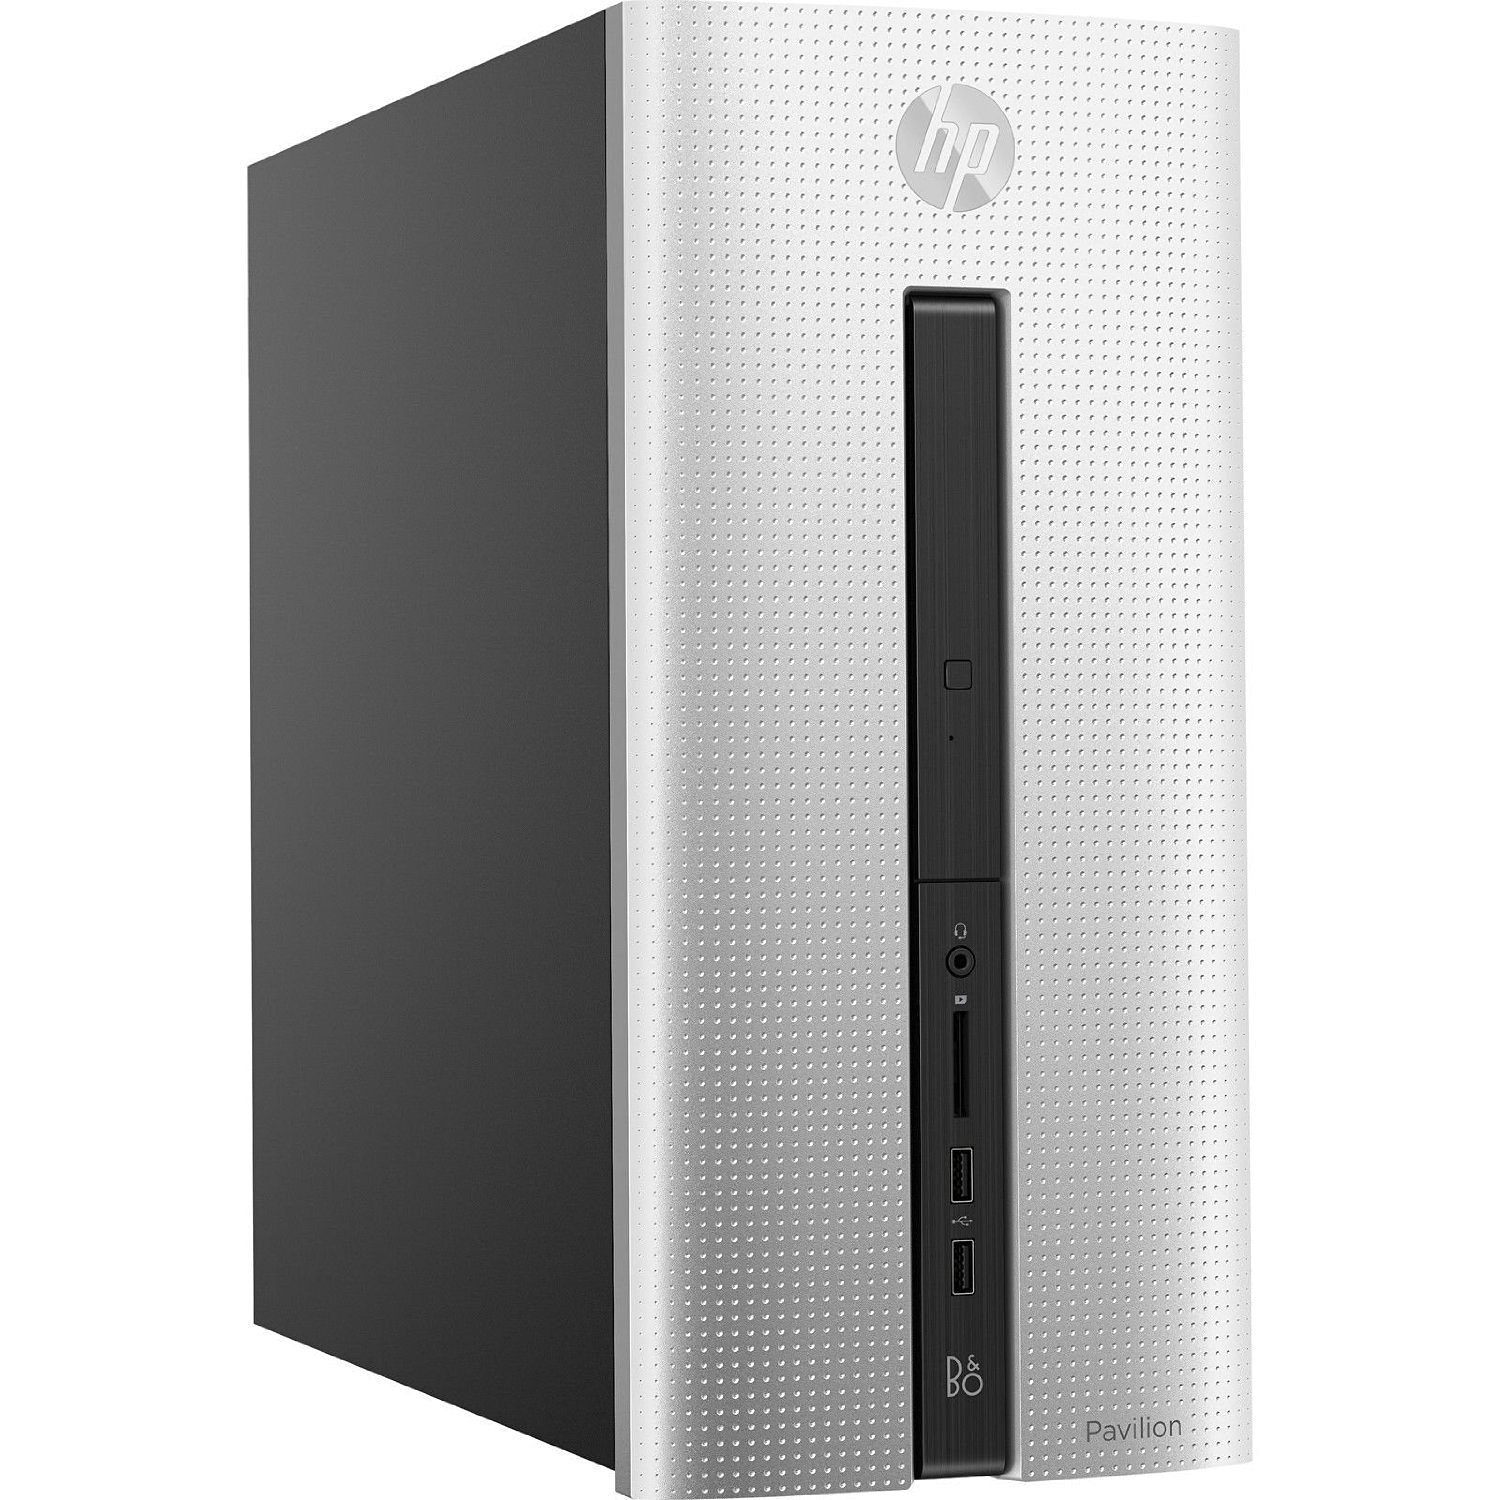 Click here to buy 2017 HP Pavilion 500 550 High Performance Desktop Computer (AMD A8-6410 Quad-Core 2.0GHz up to 2.4GHz, 8GB RAM, 1TB HDD,... by HP.